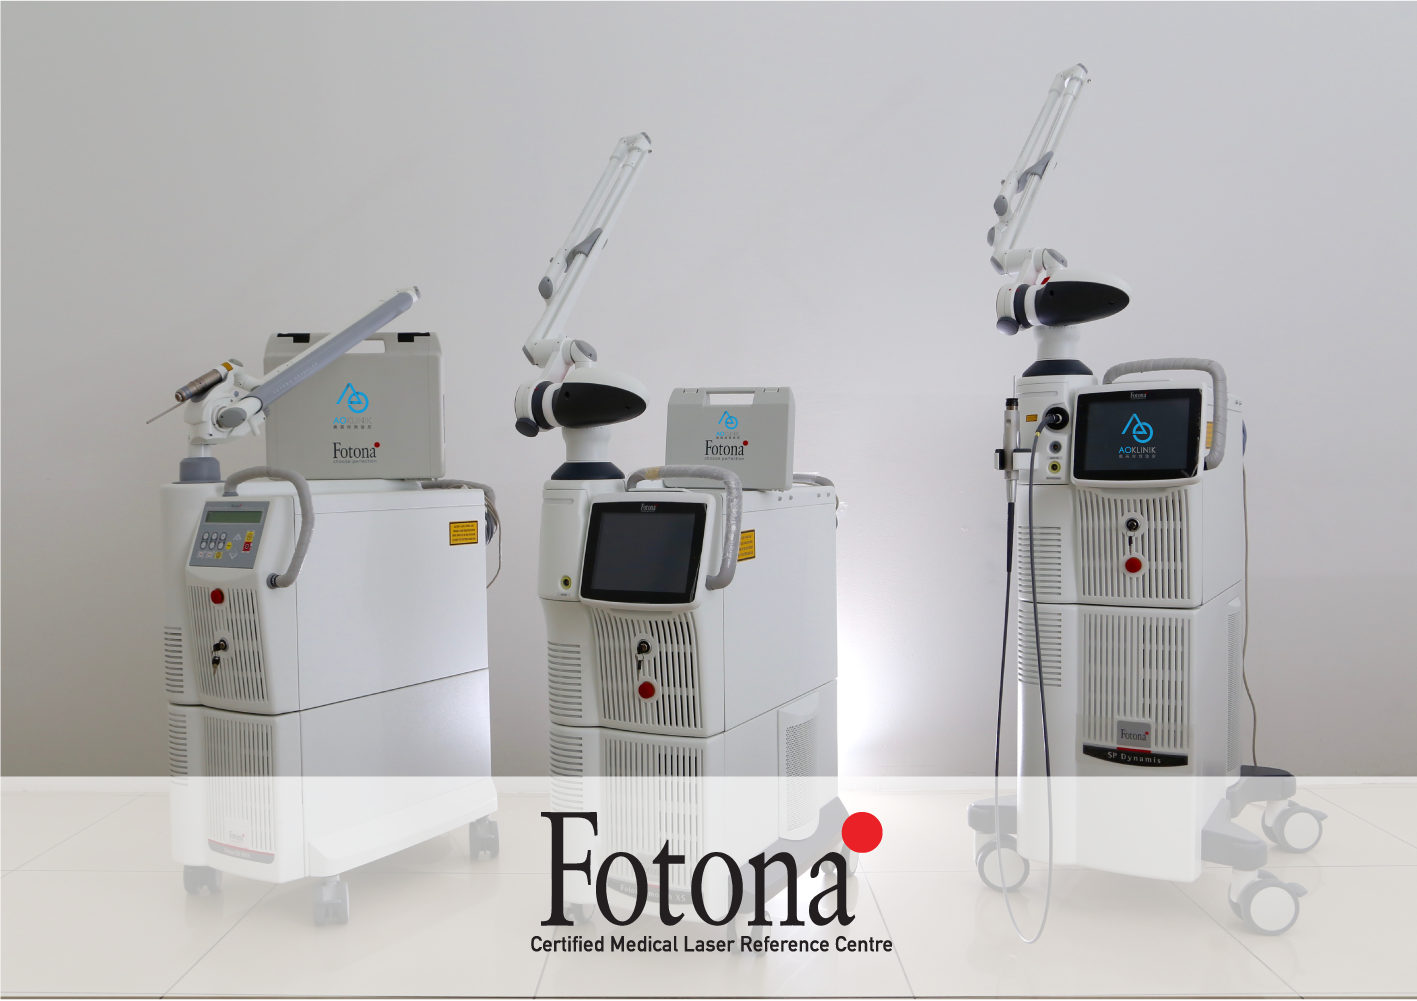 aoklinik_fotona_equipments_WEB